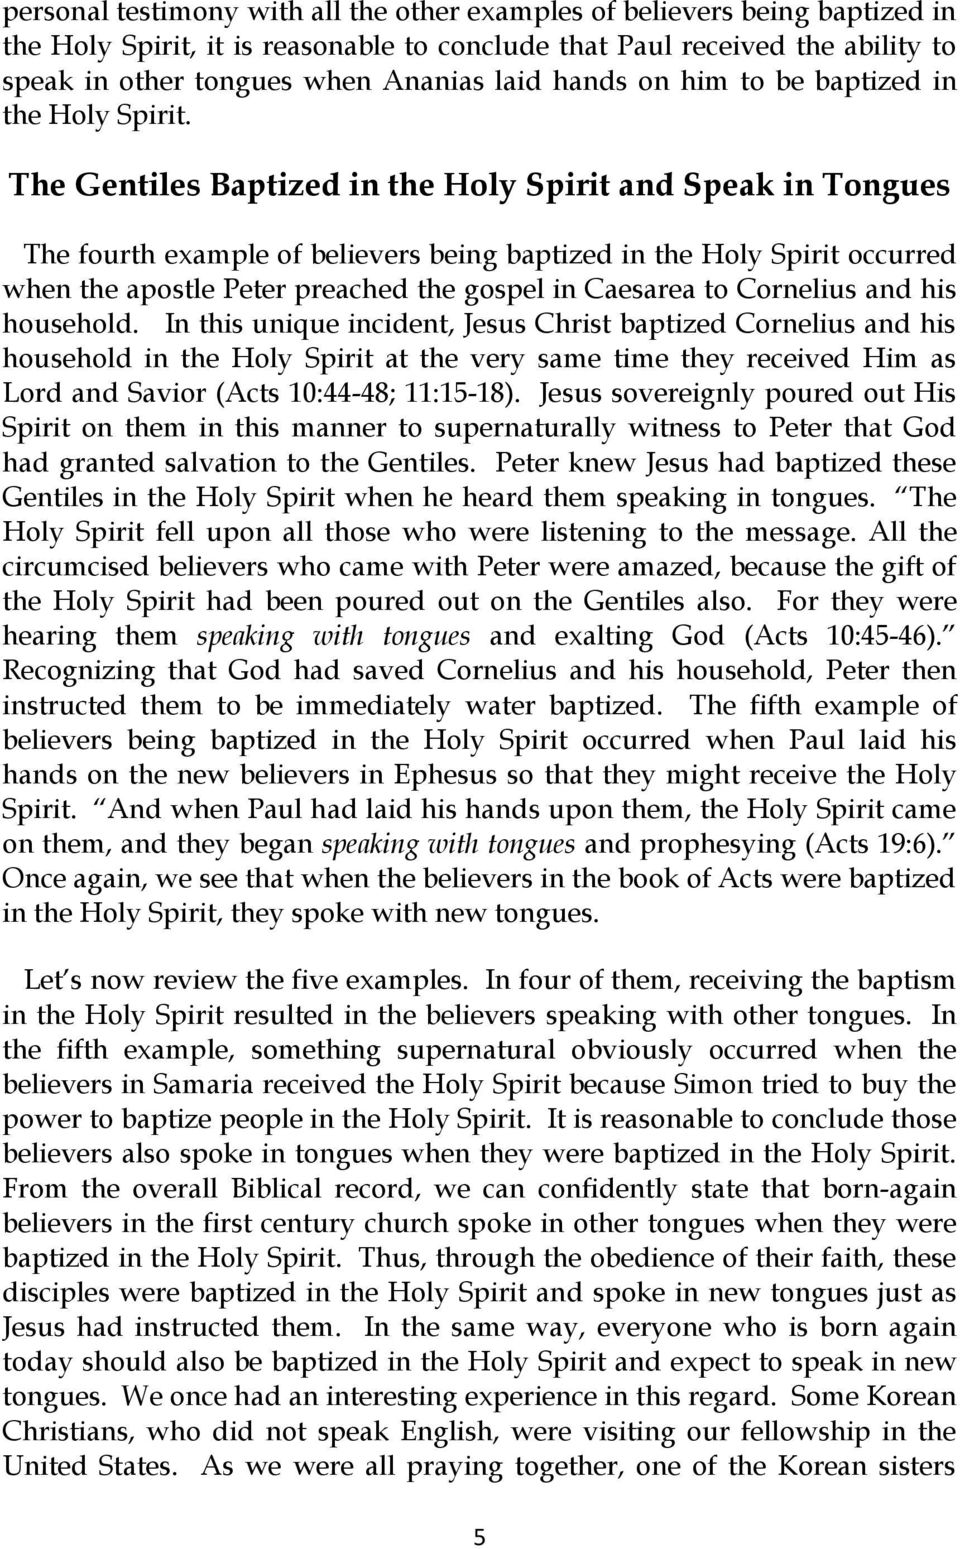 The Gentiles Baptized in the Holy Spirit and Speak in Tongues The fourth example of believers being baptized in the Holy Spirit occurred when the apostle Peter preached the gospel in Caesarea to